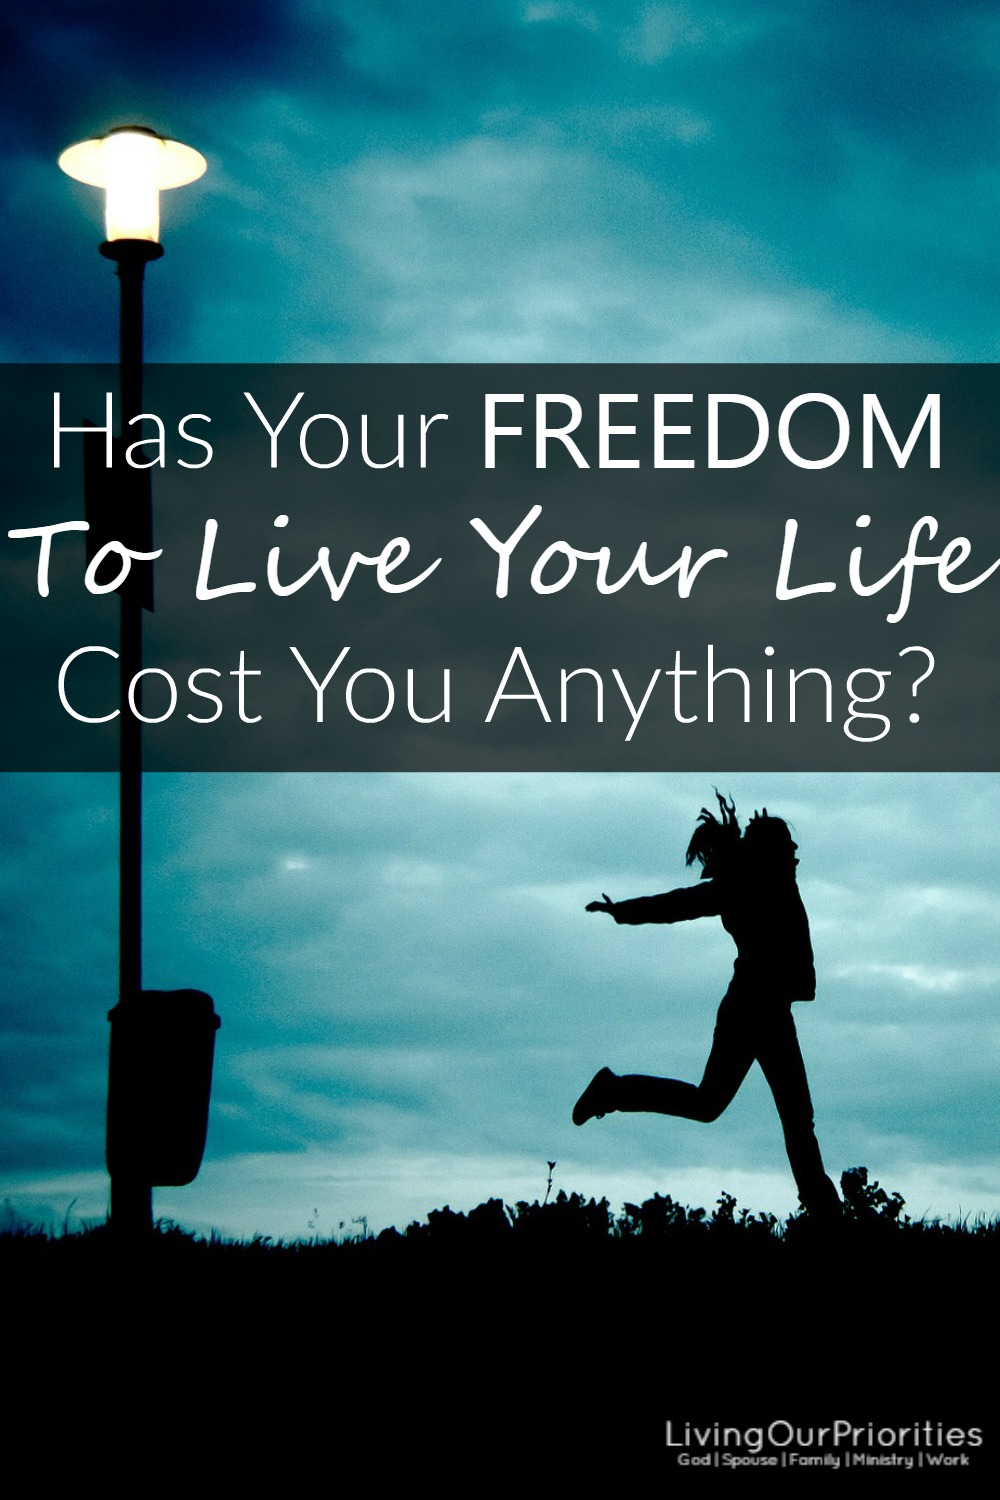 Has your freedom to live your life, the way you want, cost you anything? Even if you've made poor decisions, you have the power to change that.